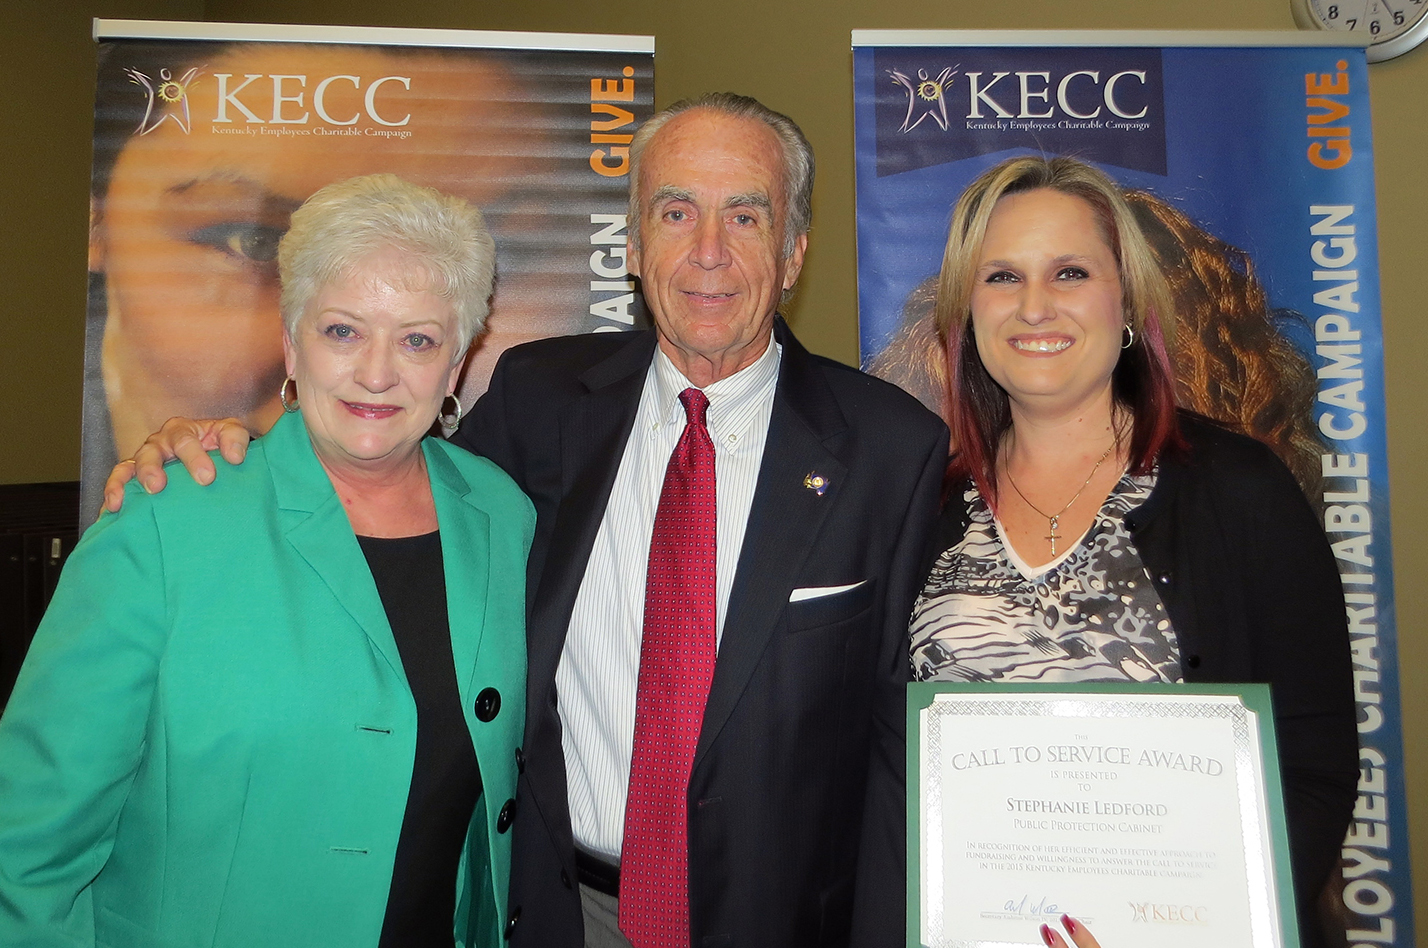 KECC Blog: State Employees Recognized for Rallying to Help ...